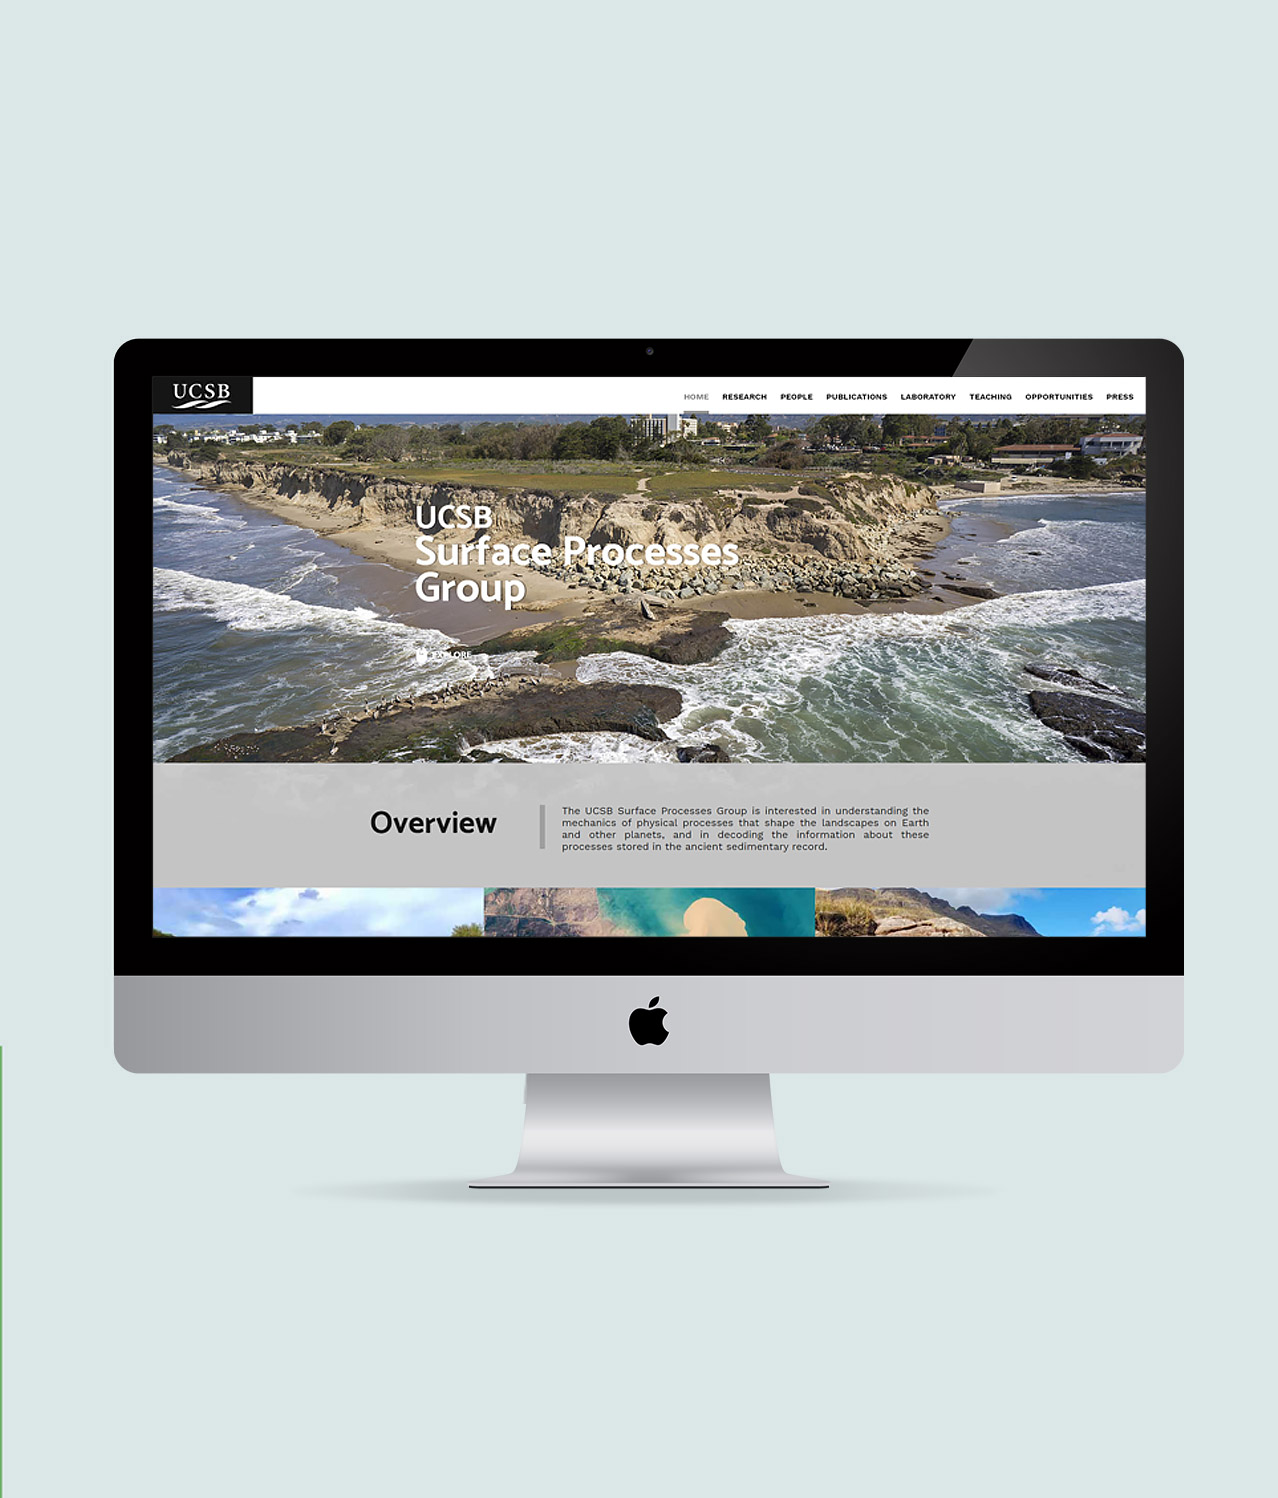 UCSB website